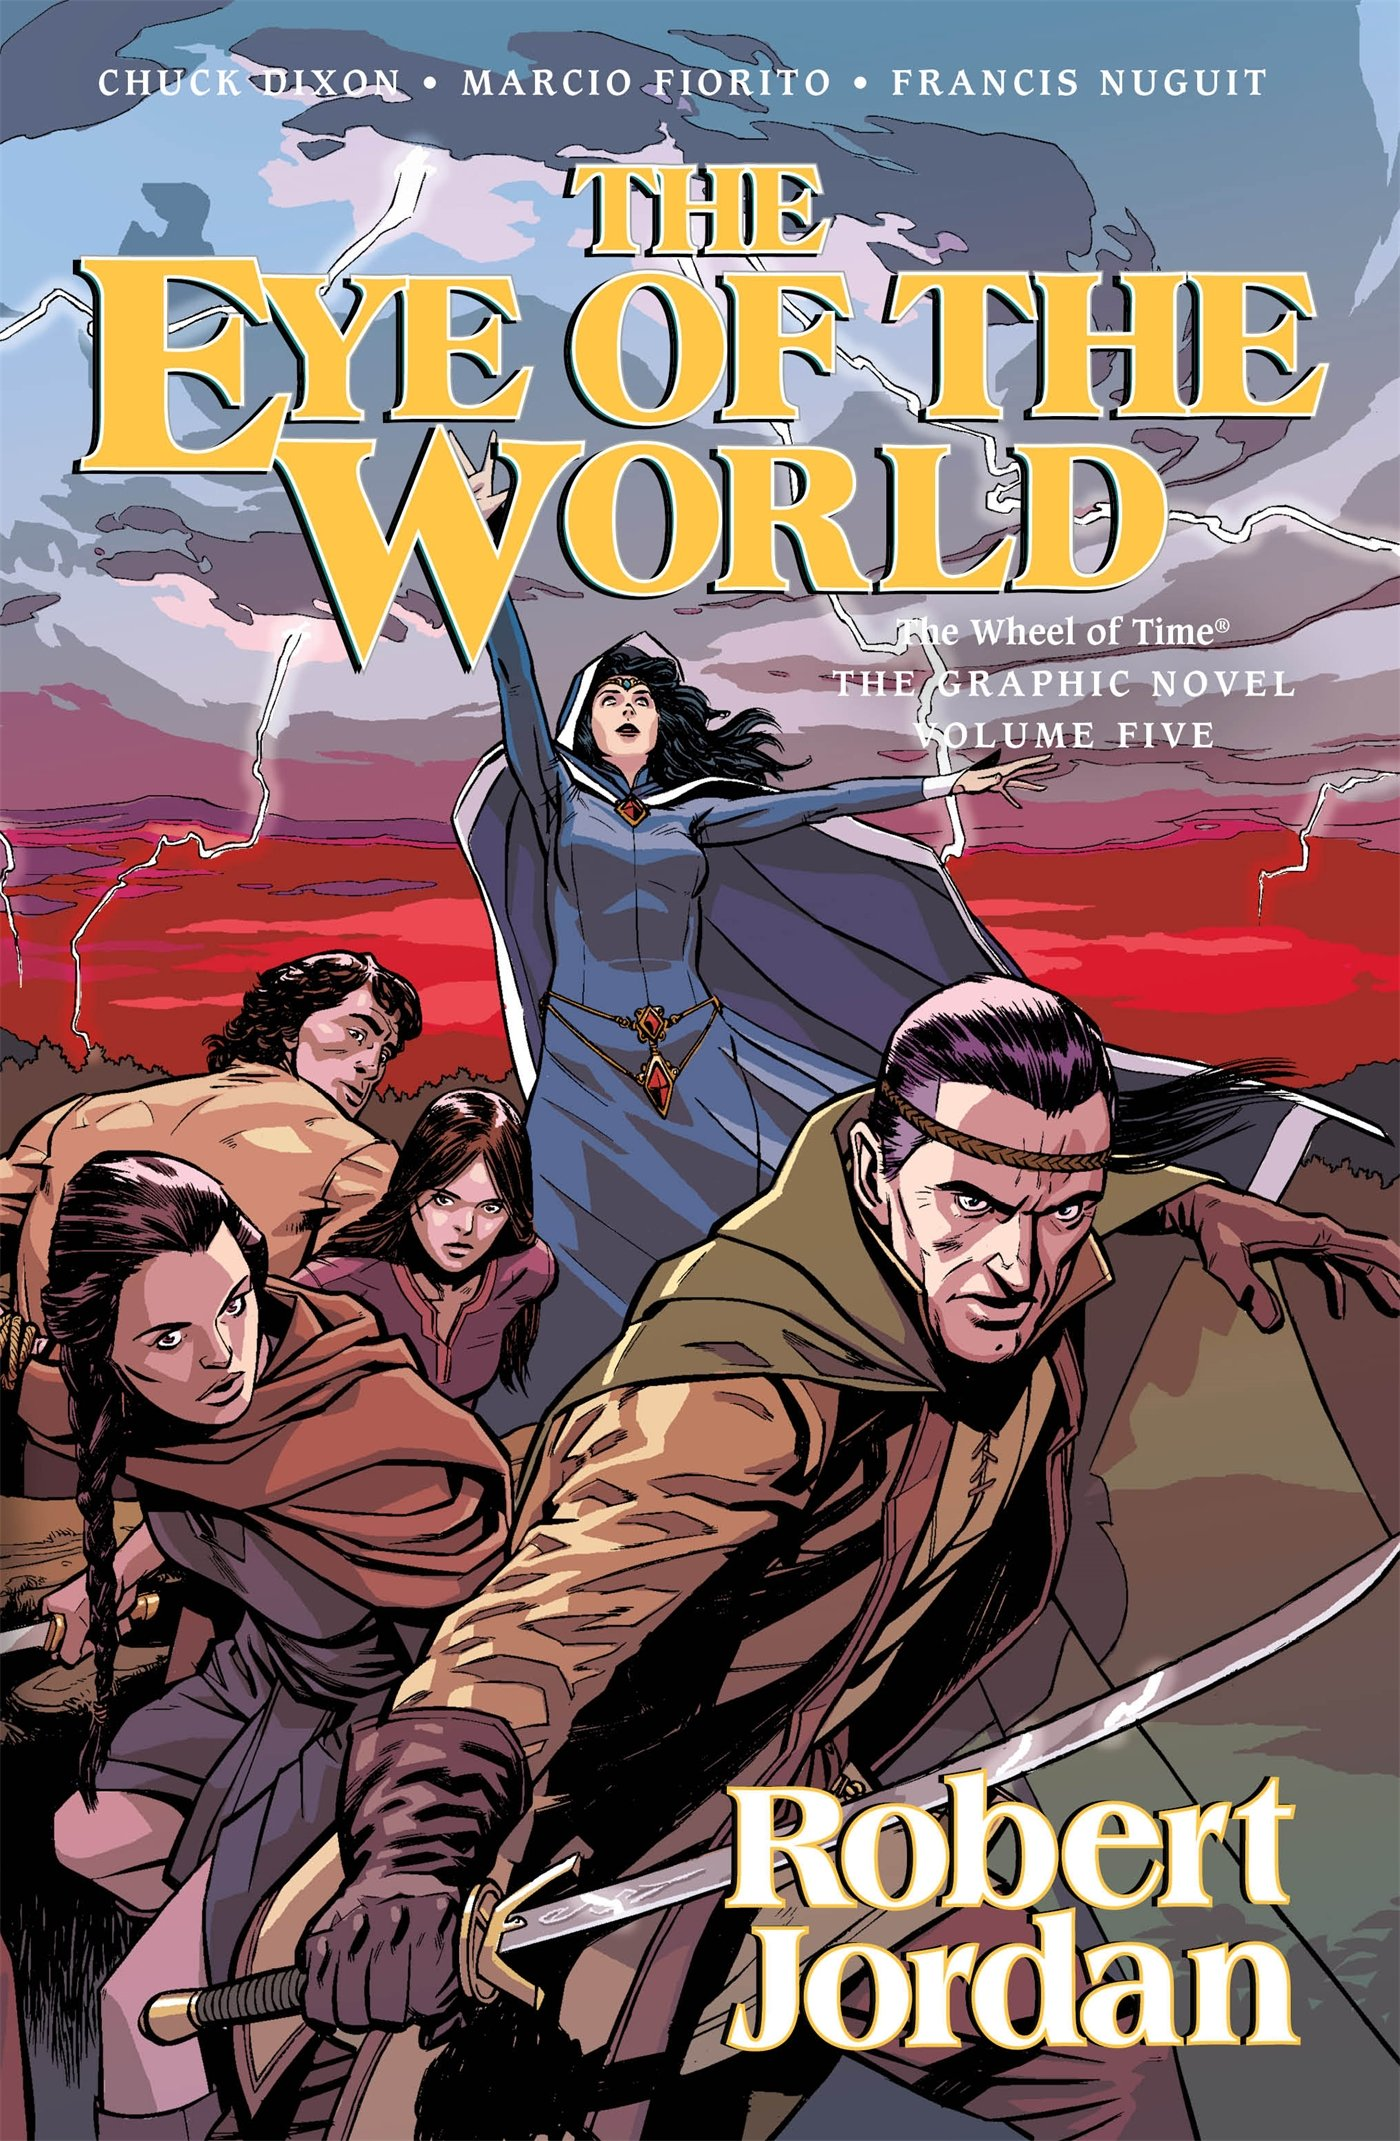 Download The Eye of the World: The Graphic Novel, Volume Five (Wheel of Time Other) ebook